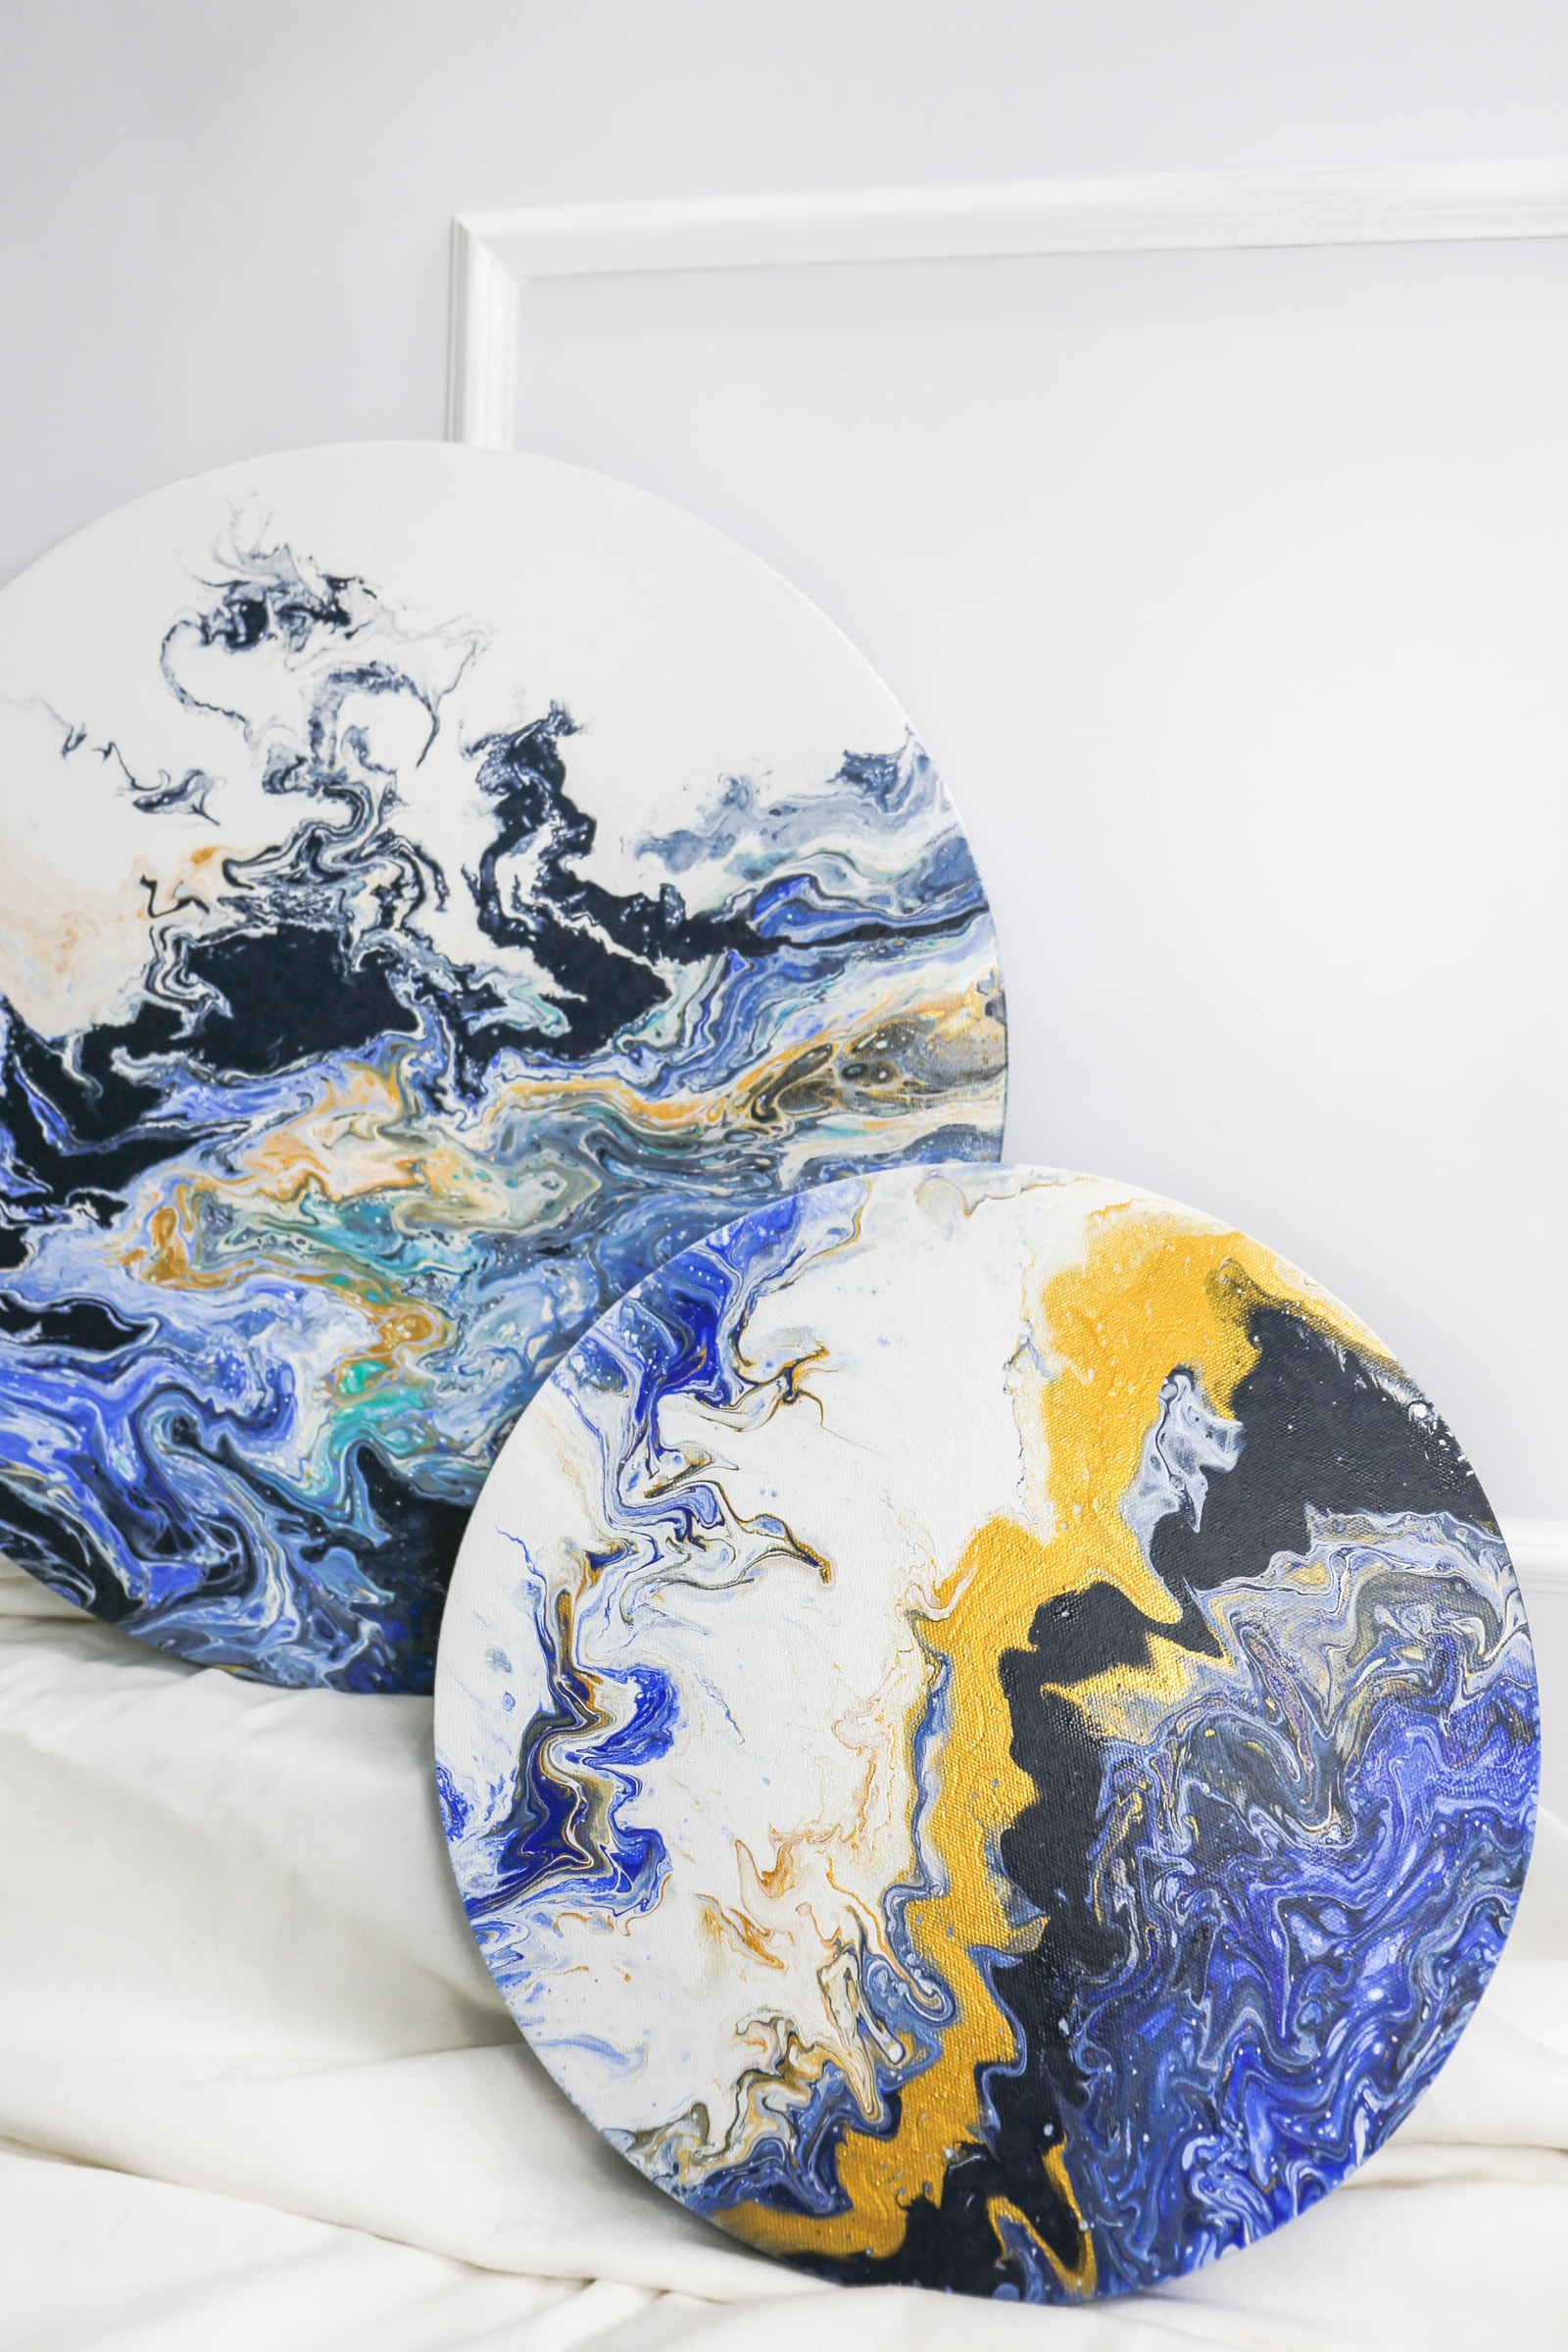 The Ocean's Collection - A variety of blues inspired by the oceans, waves and sands